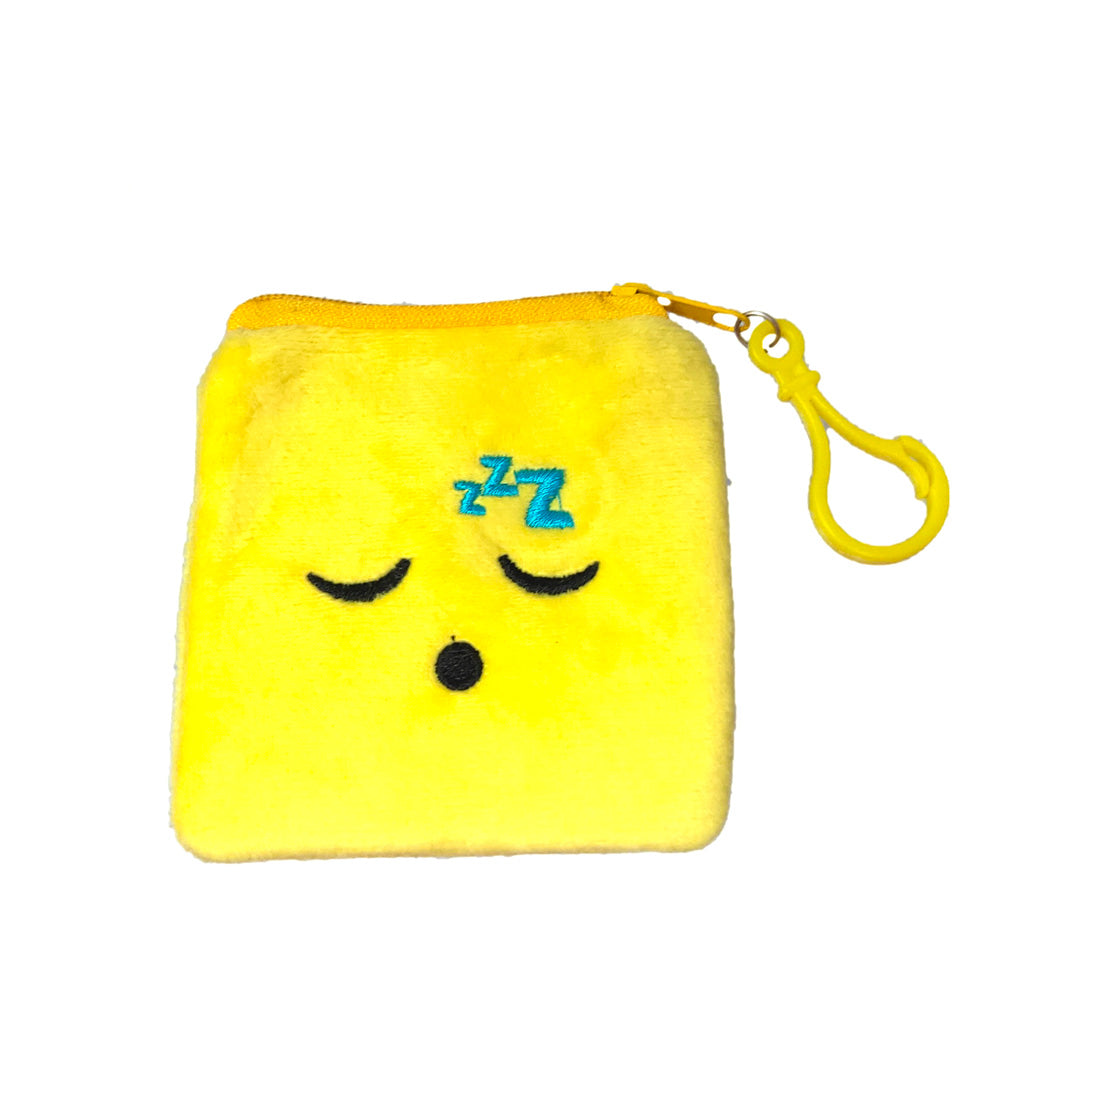 Anokhi Ada Yellow Velvet Smiley Handy Purse/ Pouch/ Wallet for Girls (YB-01)